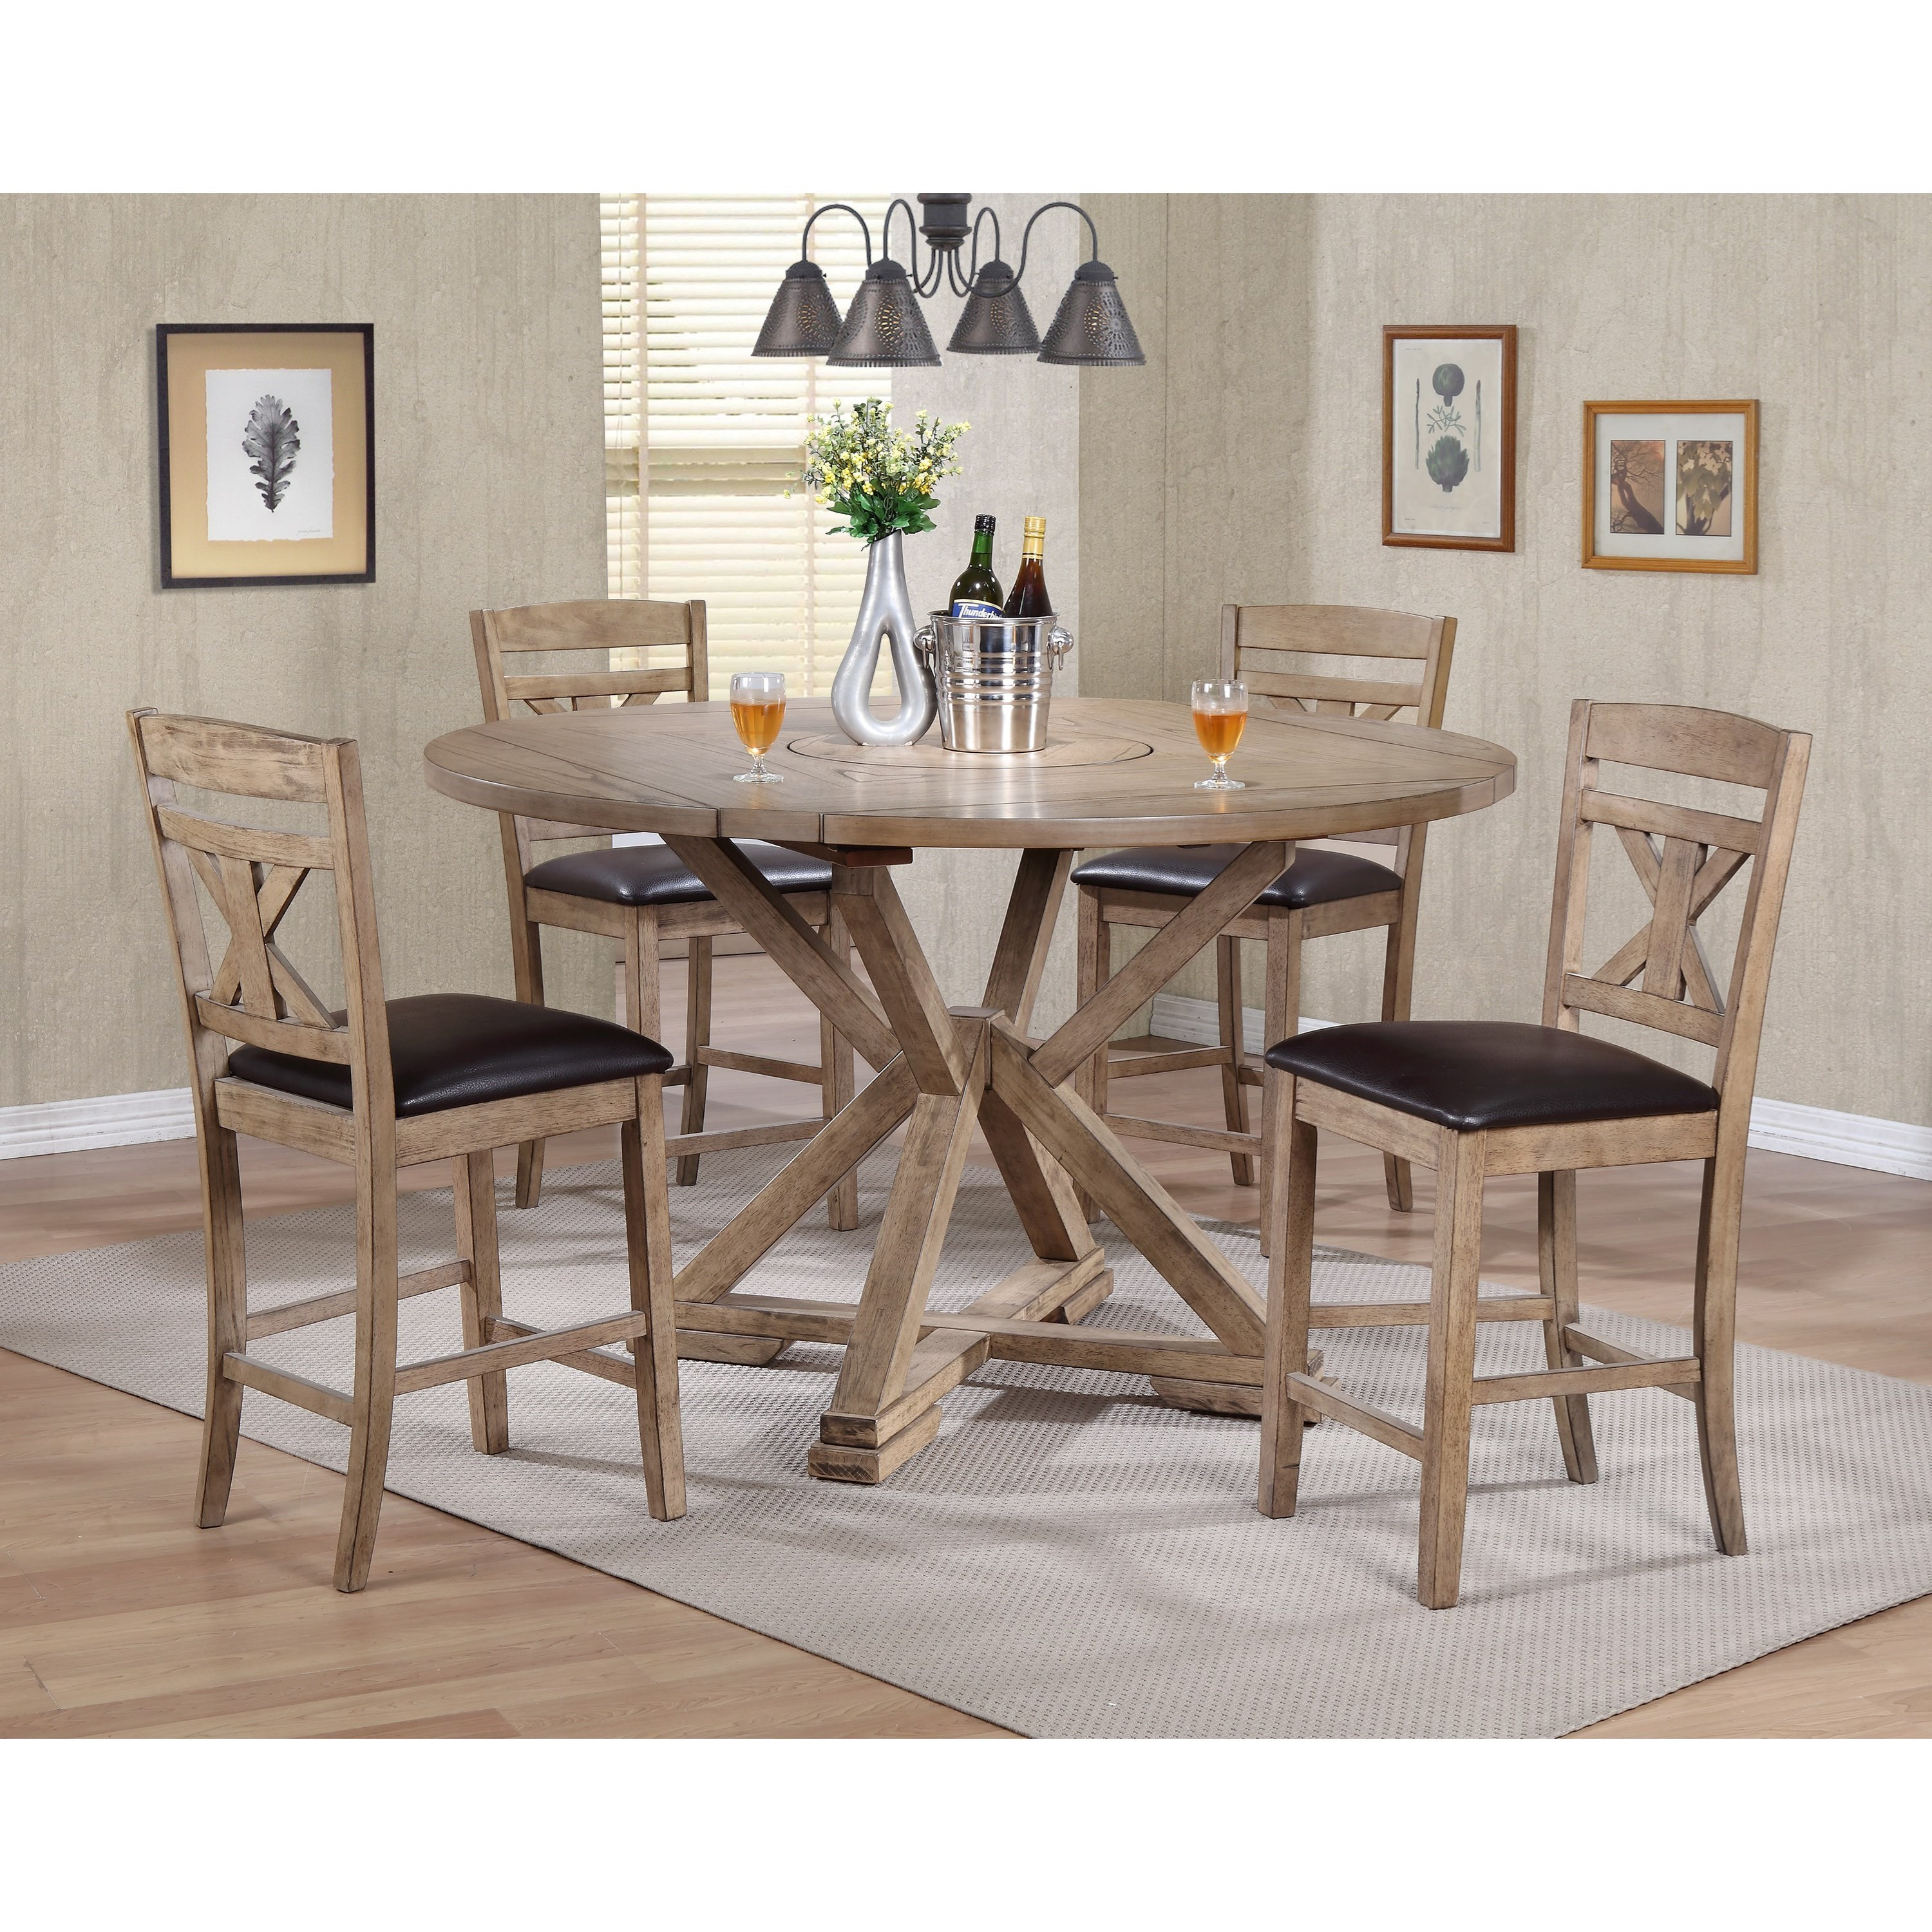 Grandview 5 Piece Counter Height Drop Leaf Dining Set By Winners Only